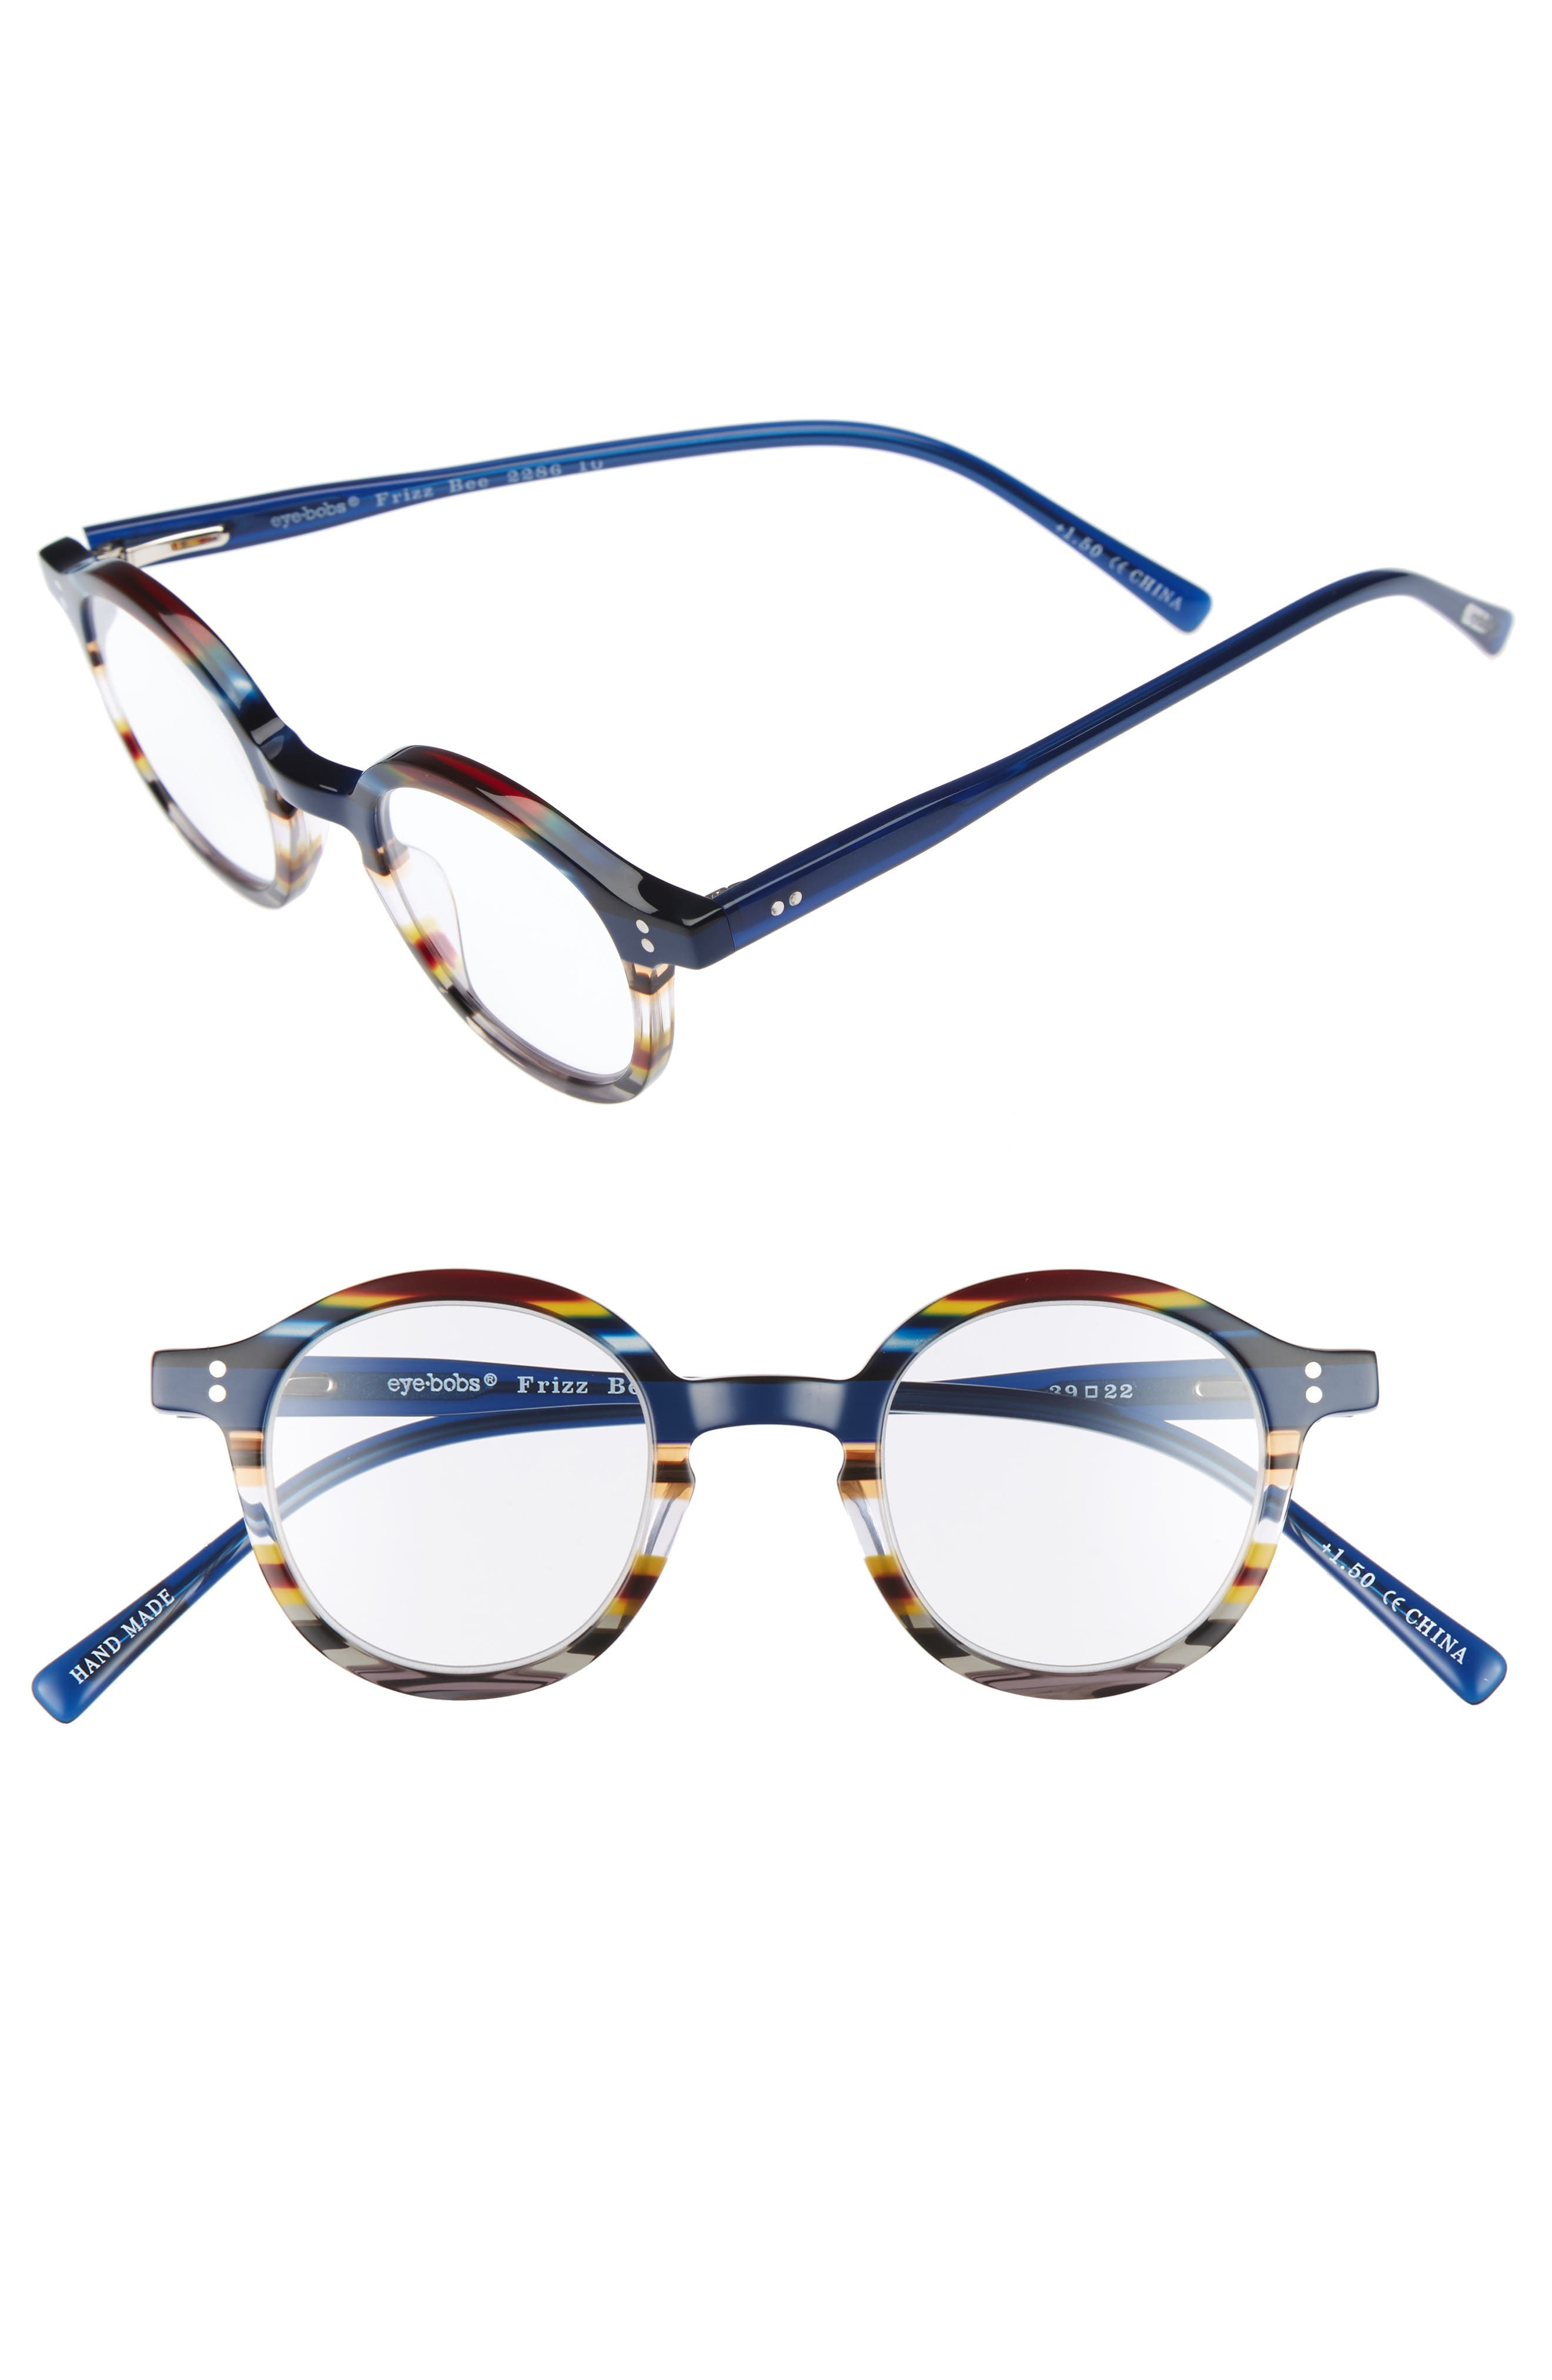 Alternate Image 1 Selected - Eyebobs Frizz Bee 39mm Reading Glasses